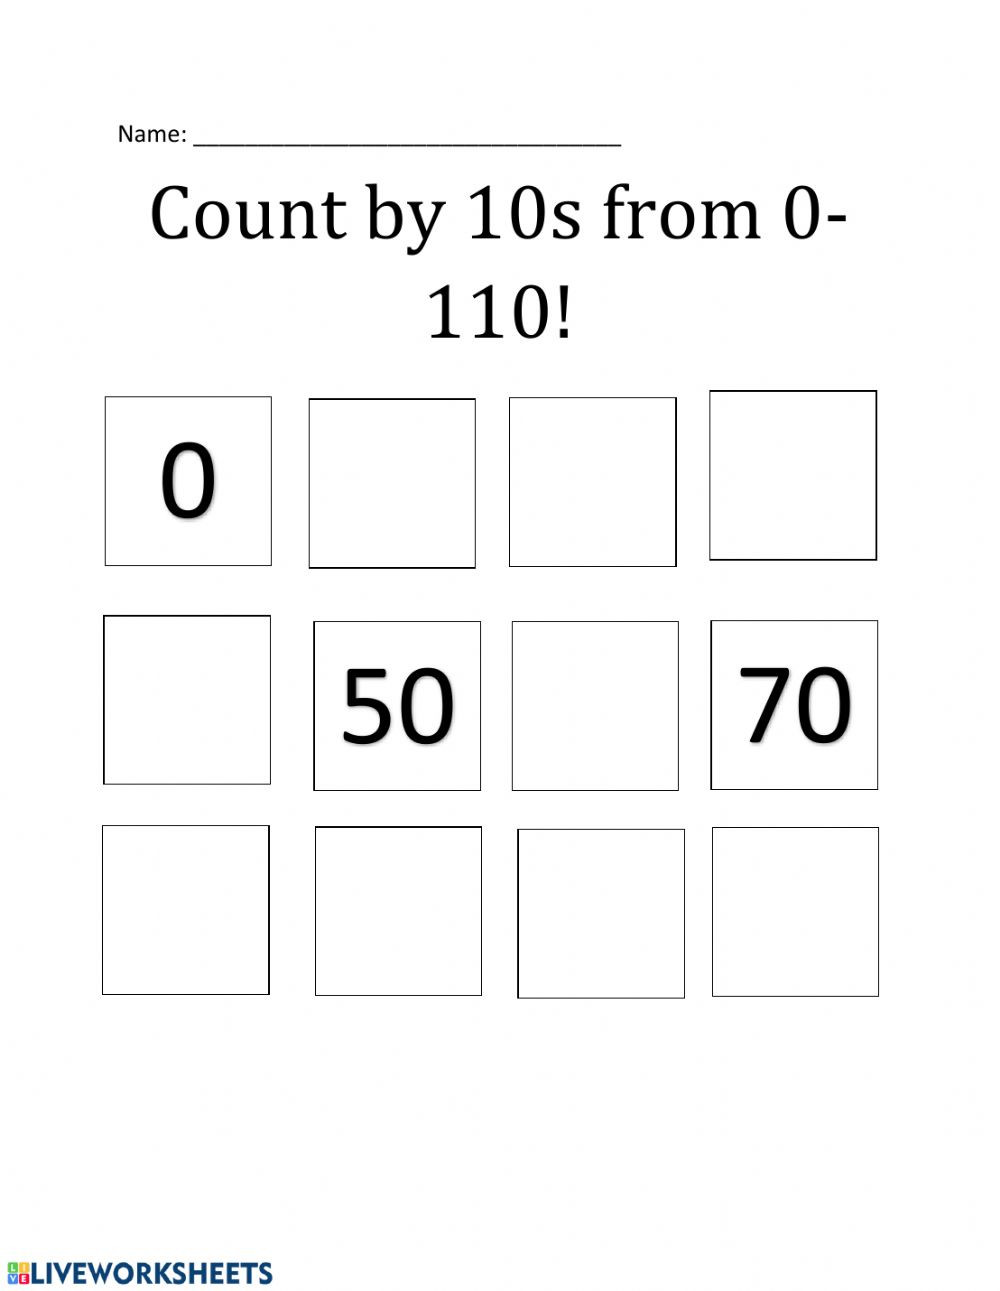 Counting In 10s Worksheet Count by 10s to 110 Interactive Worksheet